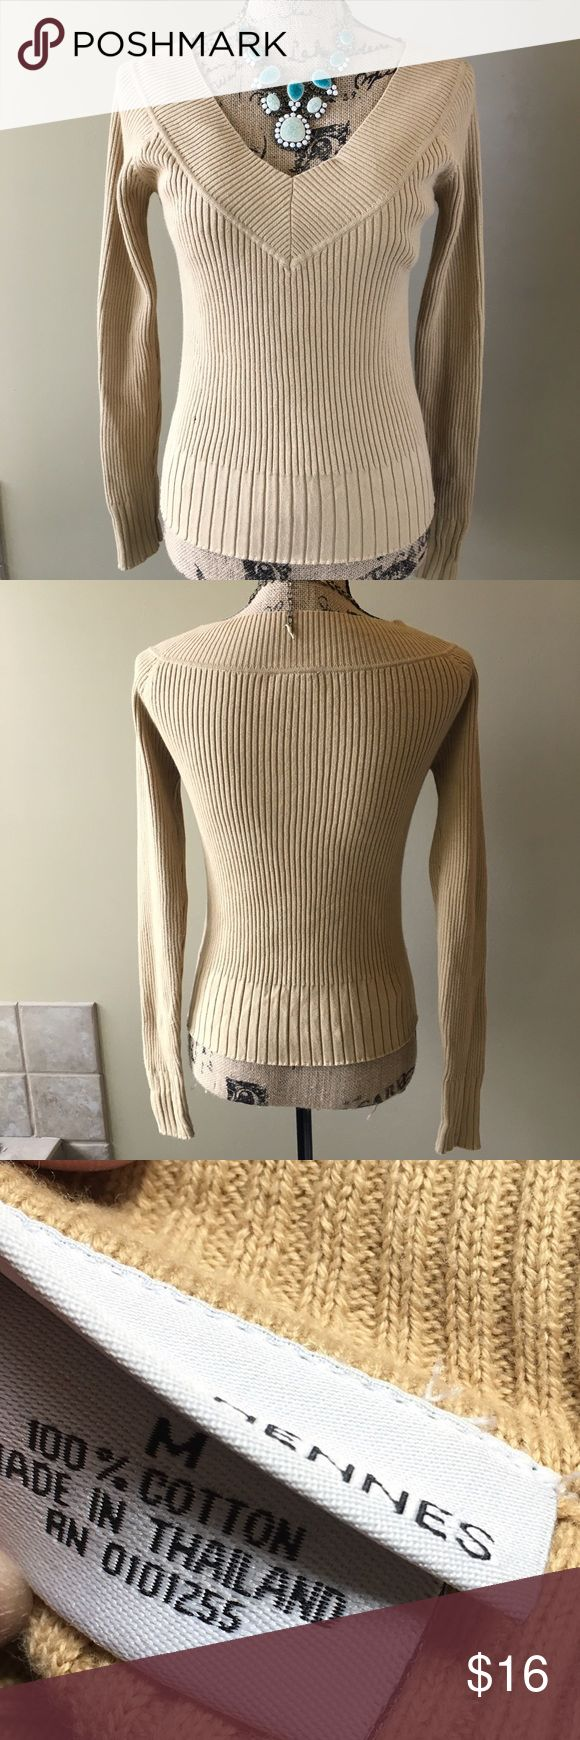 Hennessy deep v-neck ribbed top. A form fitting ribbed top with a deep v-neck. Almost perfect condition. Tiny hole on side as seen in image. Hennes Sweaters V-Necks